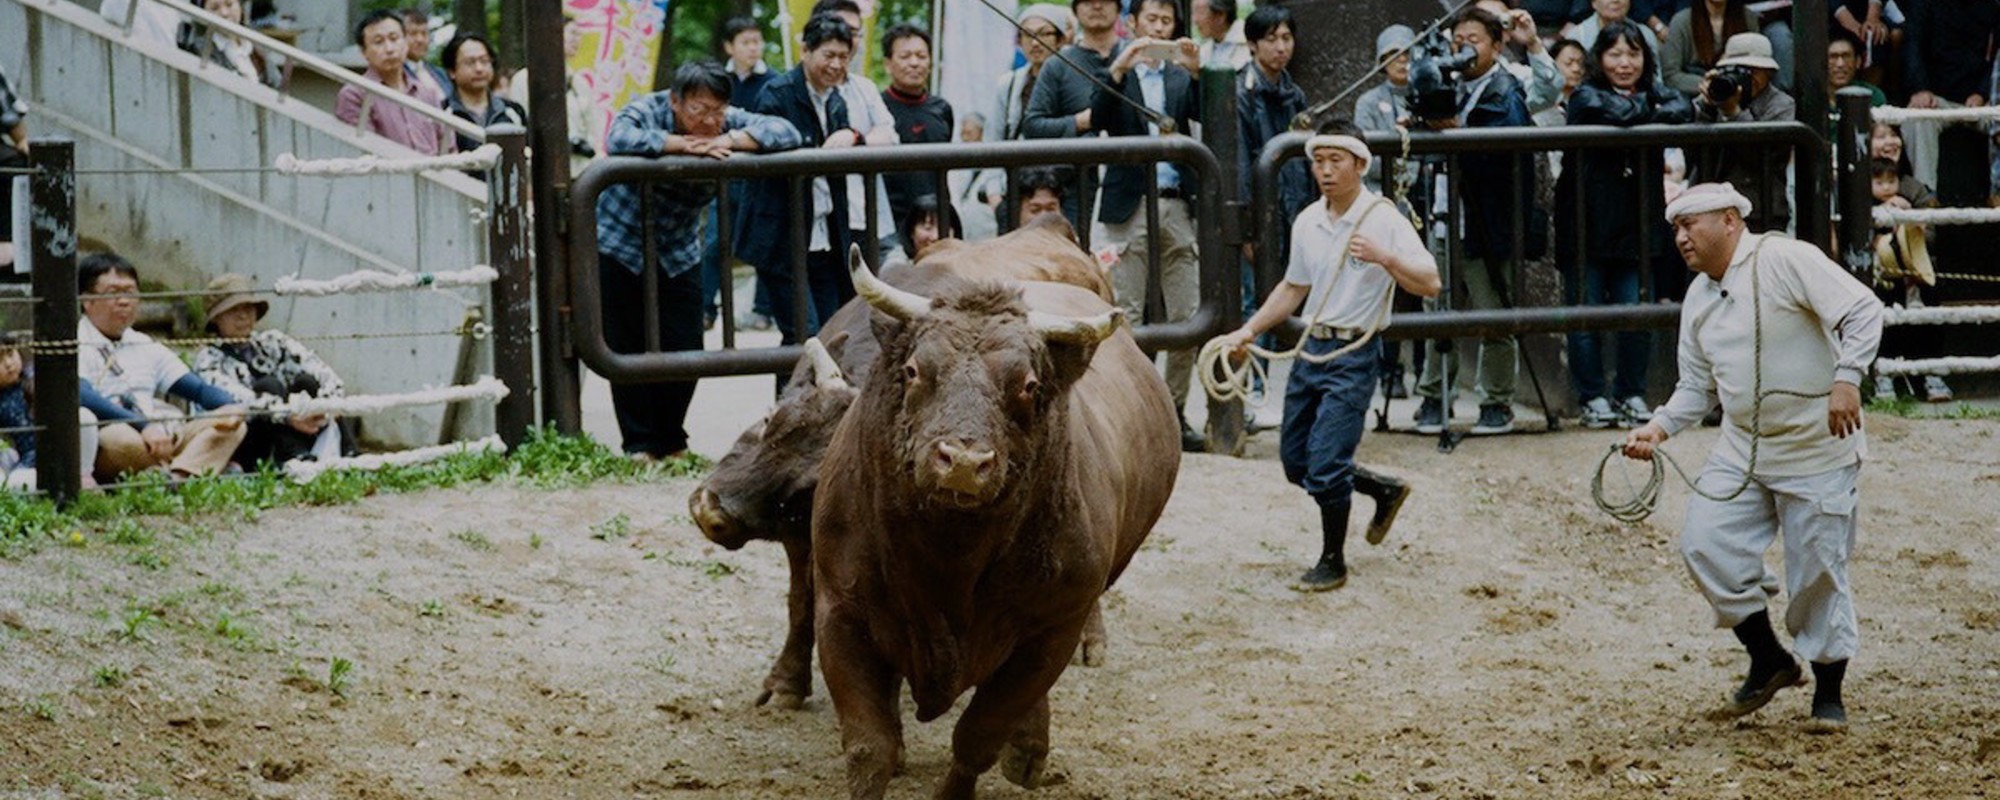 Photos From Japan's Ancient Bullfighting Ritual, Tsunotsuki